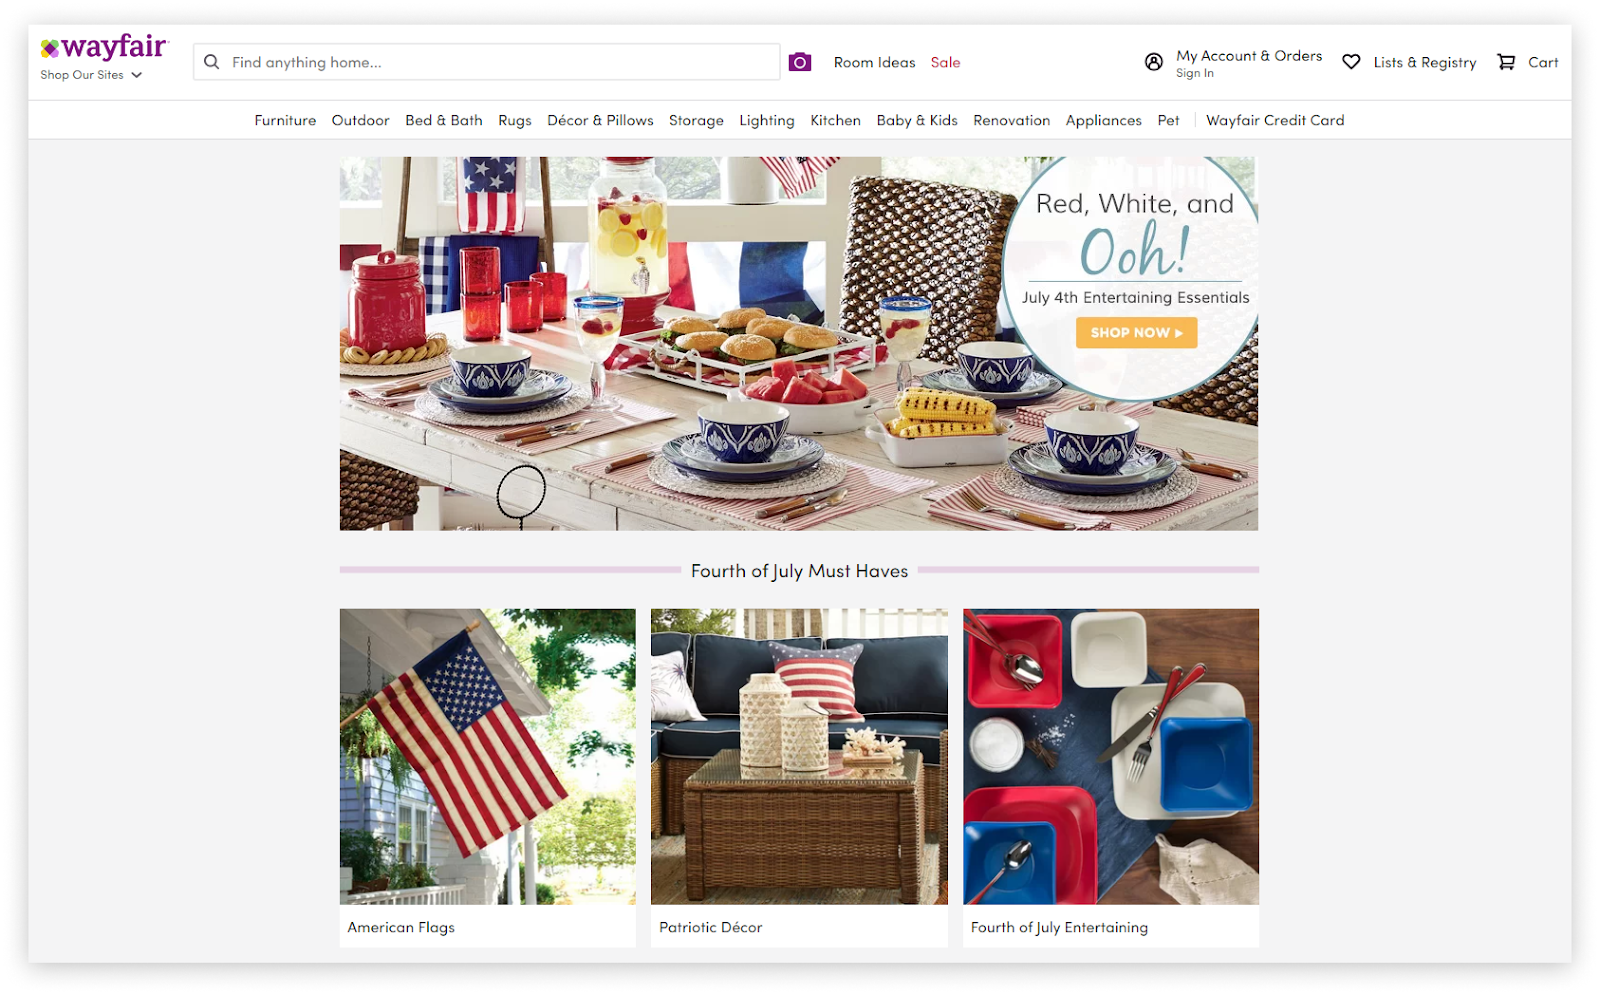 wayfair_4th_July_SMSBump